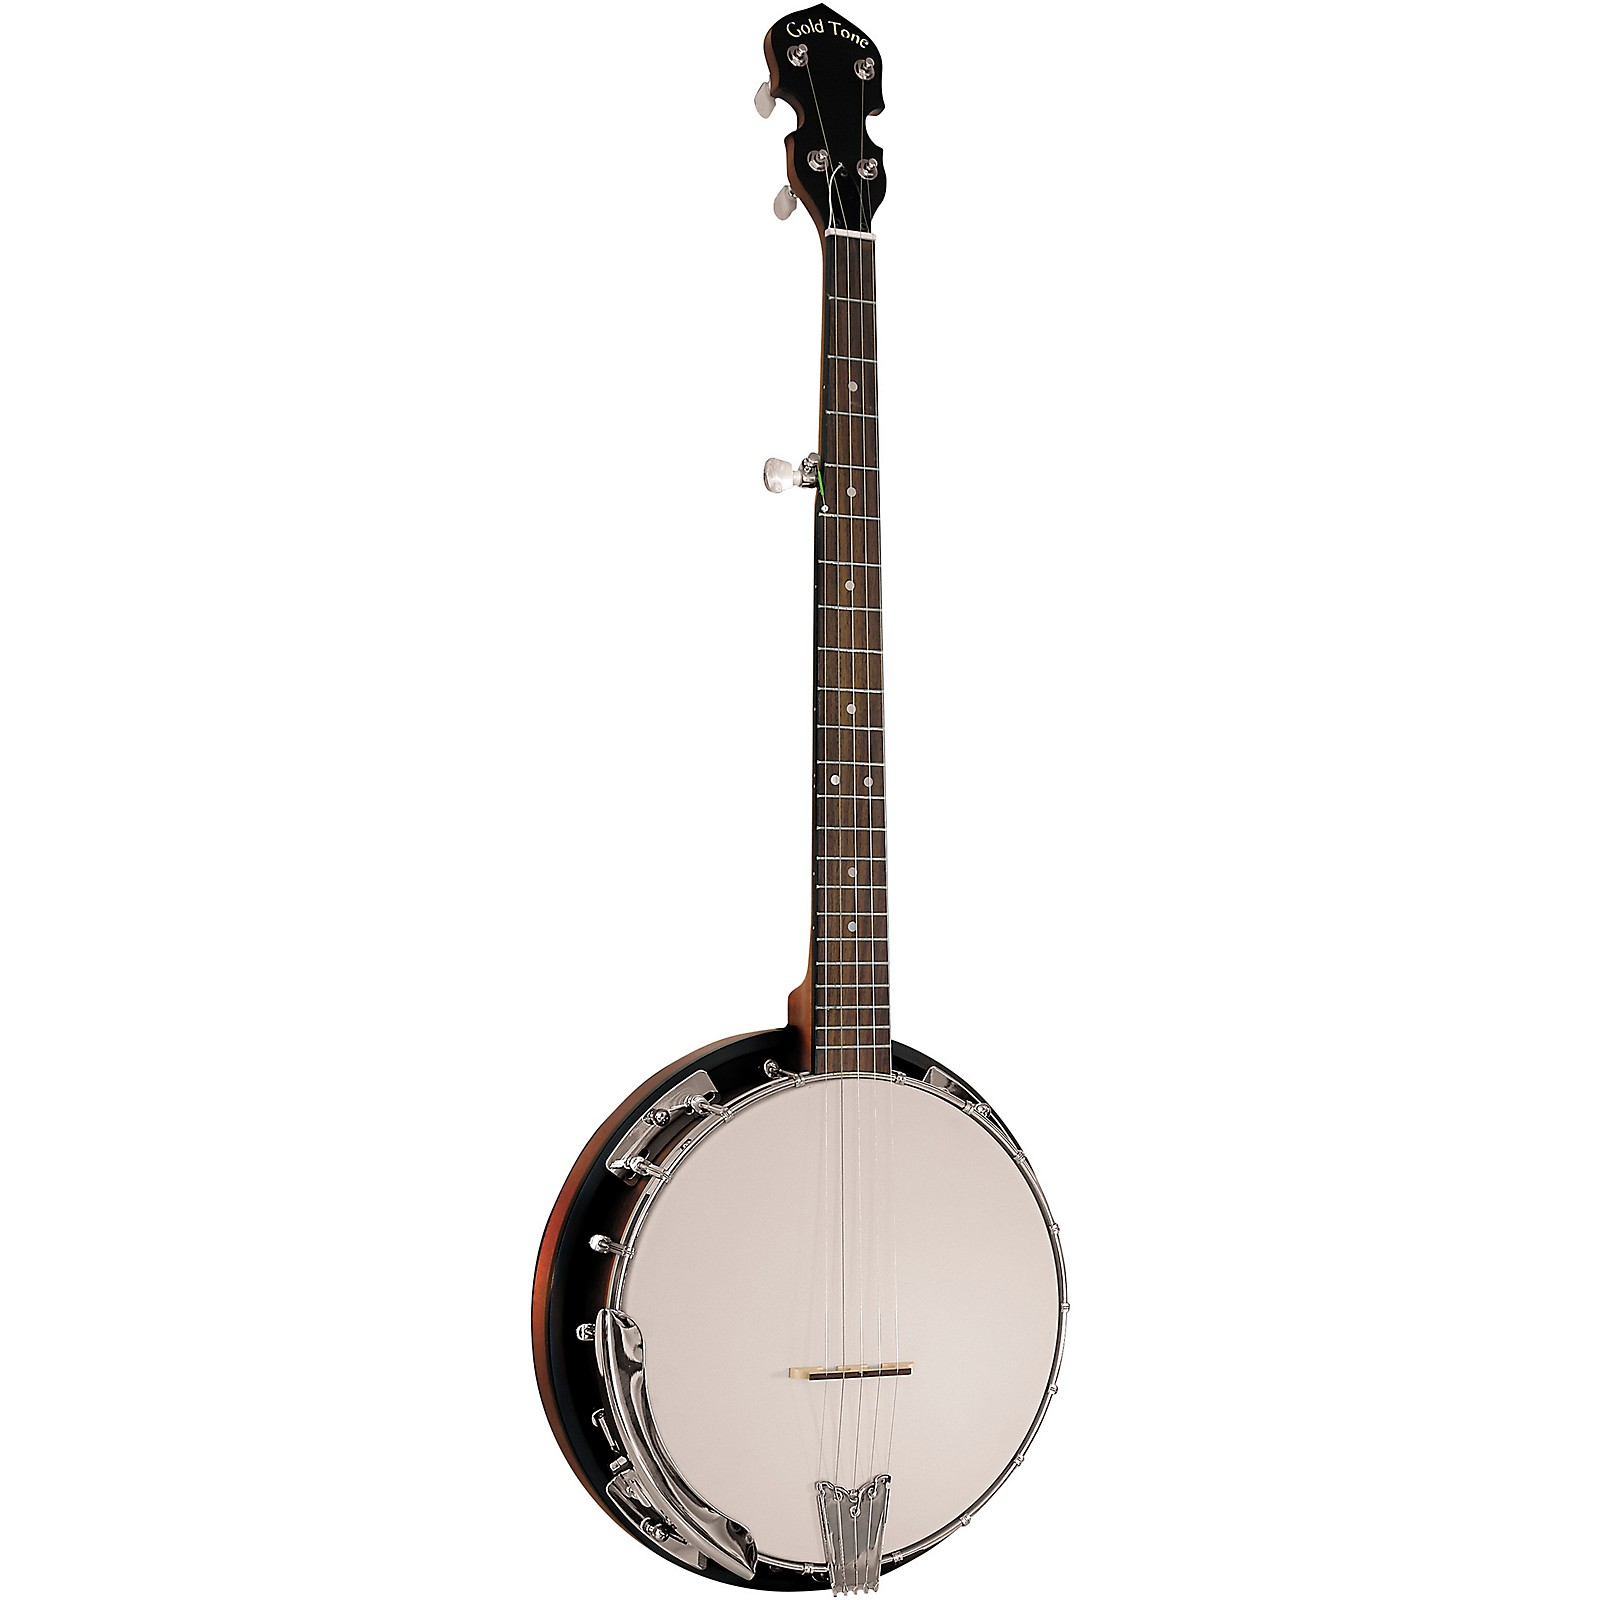 Open Box Gold Tone Cripple Creek CC-50RP/L Left-Handed Resonator Banjo With Planetary Tuners and Gig Bag